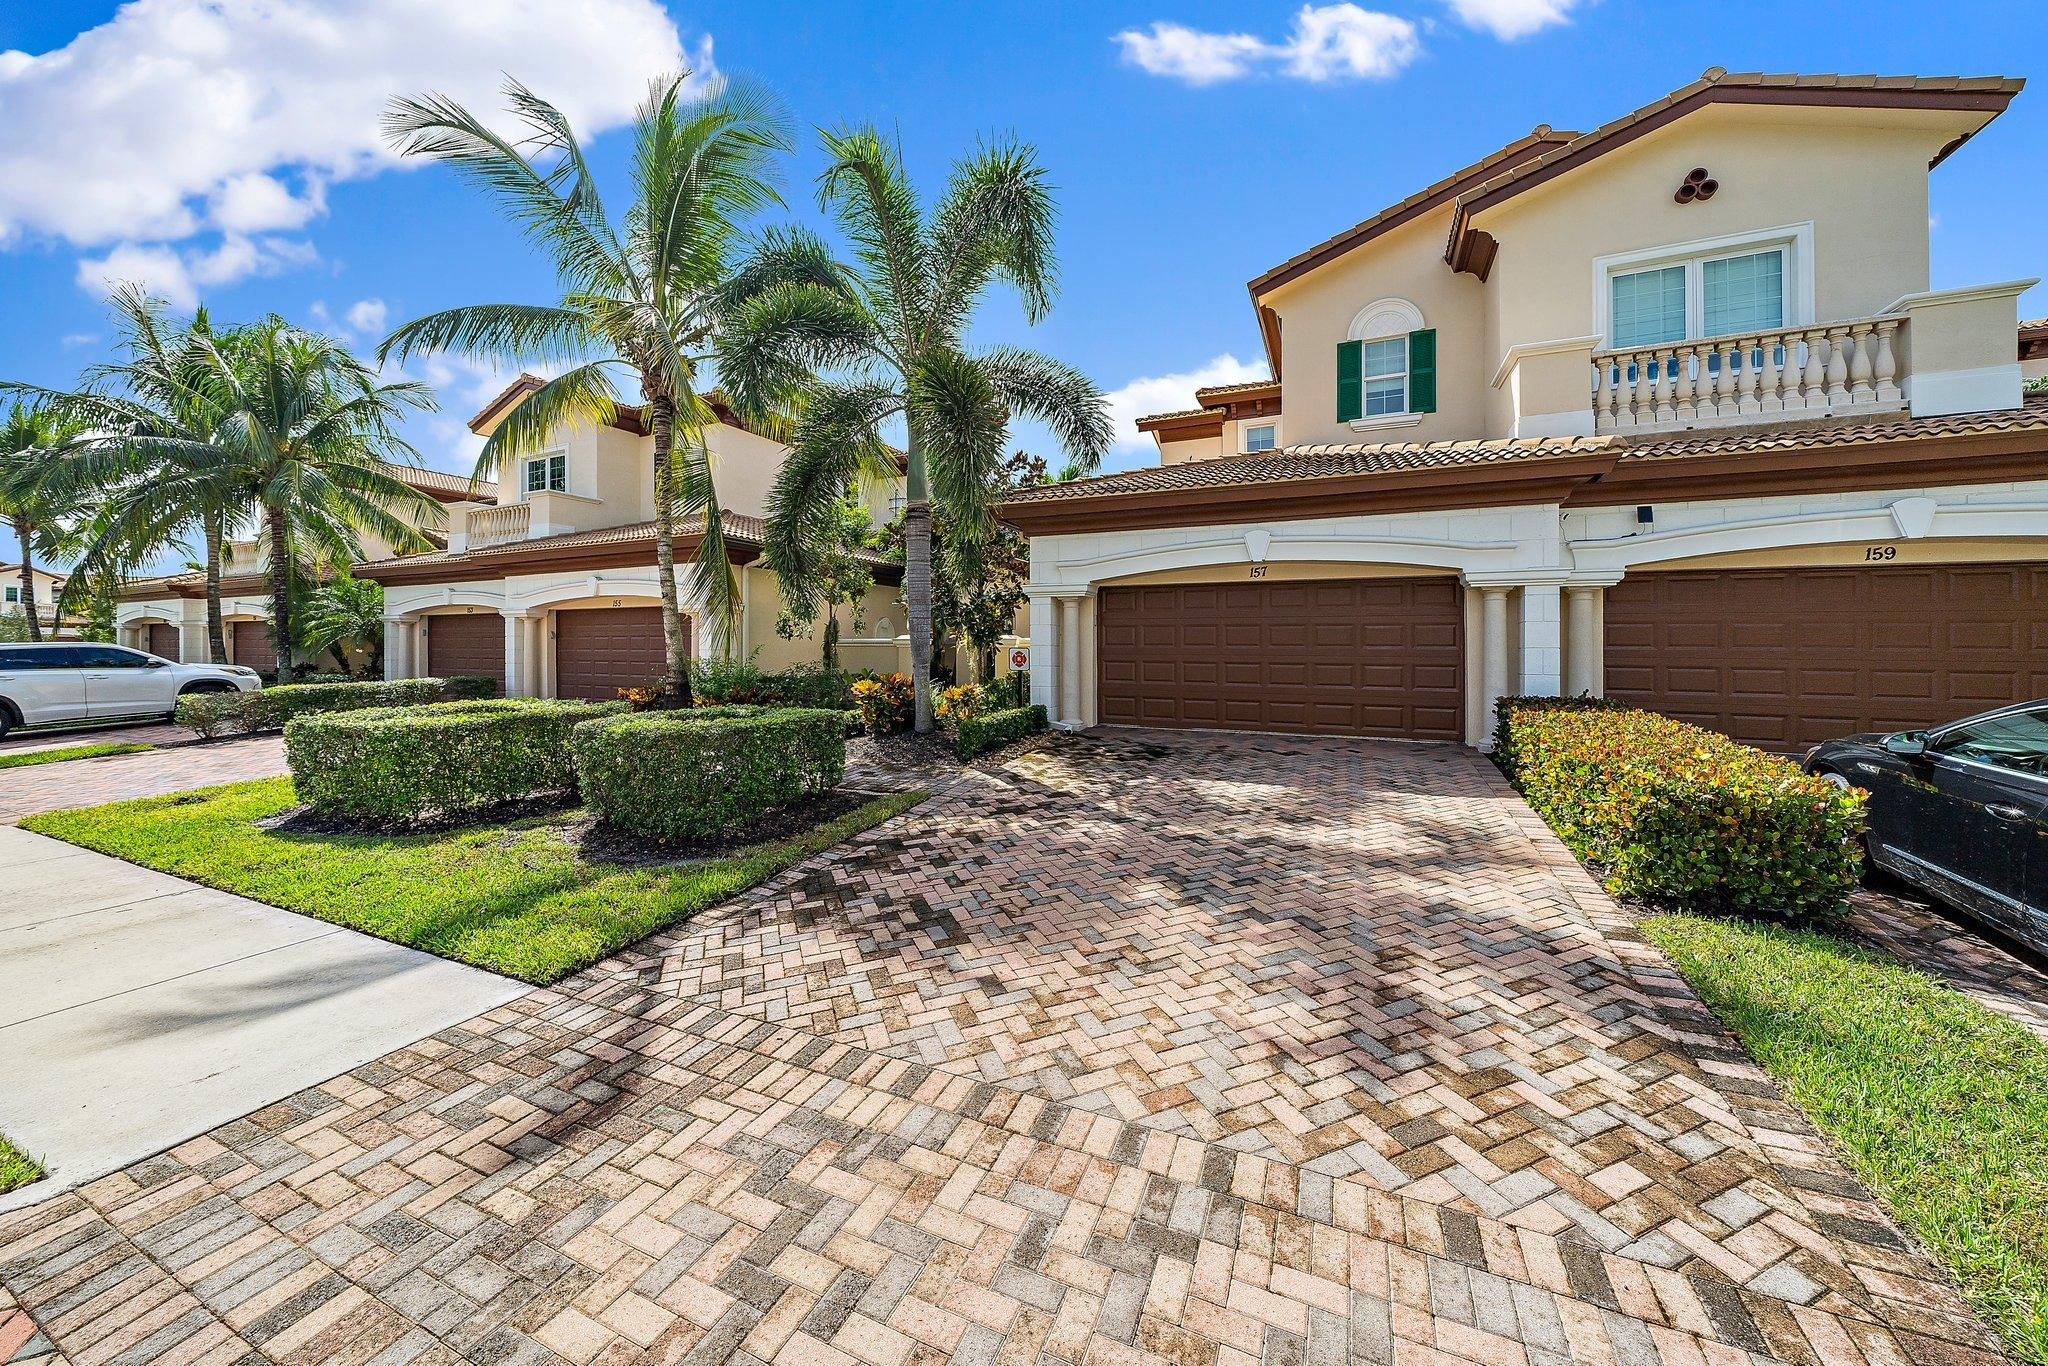 Great opportunity to own a designer furnished turnkey Carriage home in Jupiter's newest Country Club! Enjoy maintenance free living and a healthy lifestyle amidst a signature Greg Norman golf course + certified audubon preserve. This popular Genova model offers 3 bedrooms + office + 2 car garage - one of the most coveted floorplans. Great room floorplan boasts open chef's kitchen and grand lanai w/ Views (golf + sunsets!). JCC residents enjoy resort amenities and Club Corp national reciprocal privileges. Lit sidewalks throughout + 24 hour manned gated security. Minutes from world class shopping, dining, educational and cultural venues... Truly a fabulous place to live!